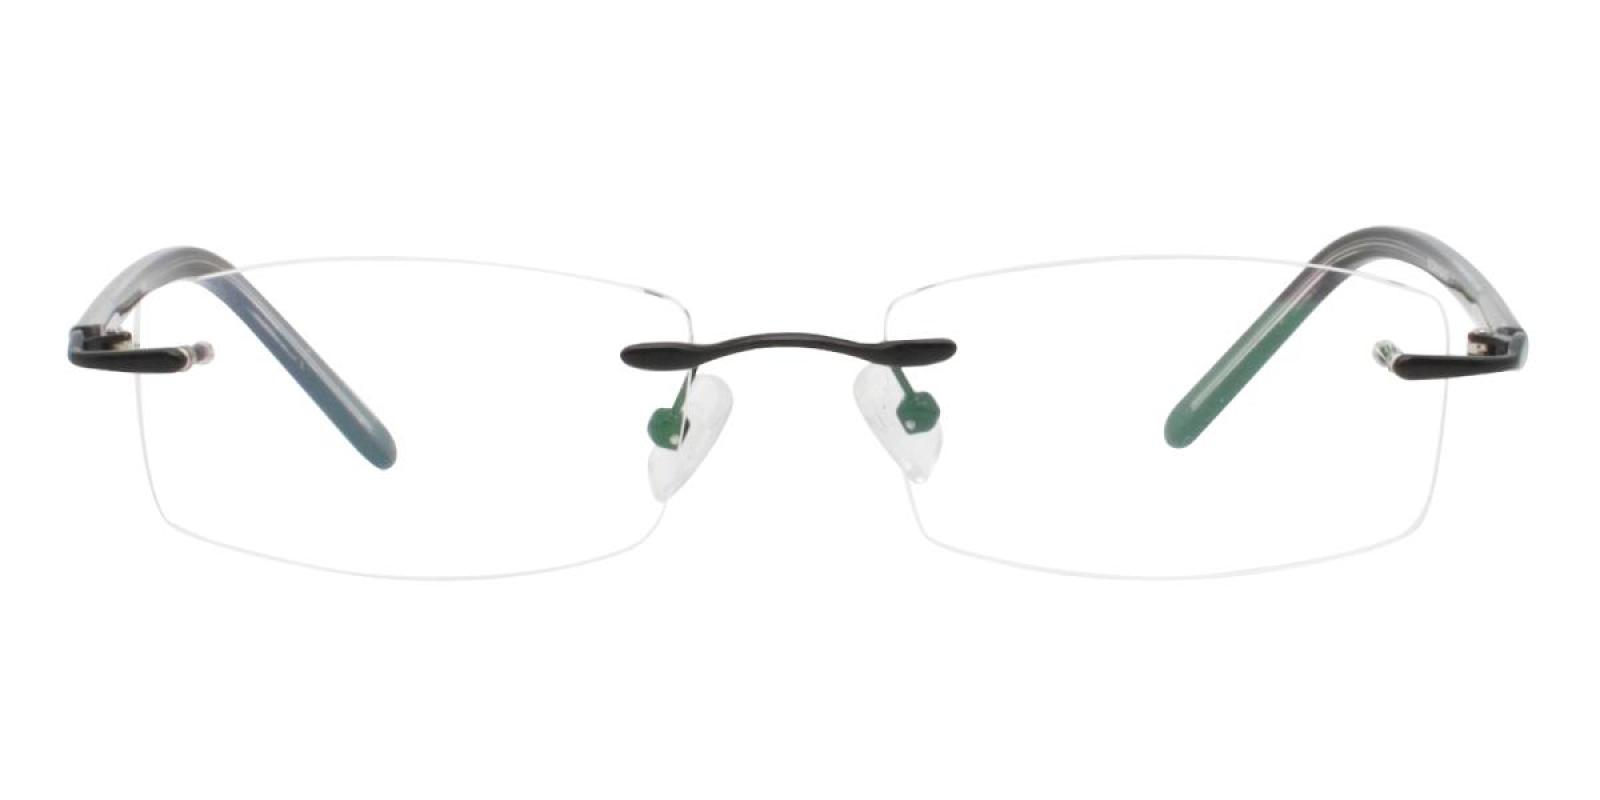 Billings-Black-Varieties-Metal-Eyeglasses-additional2